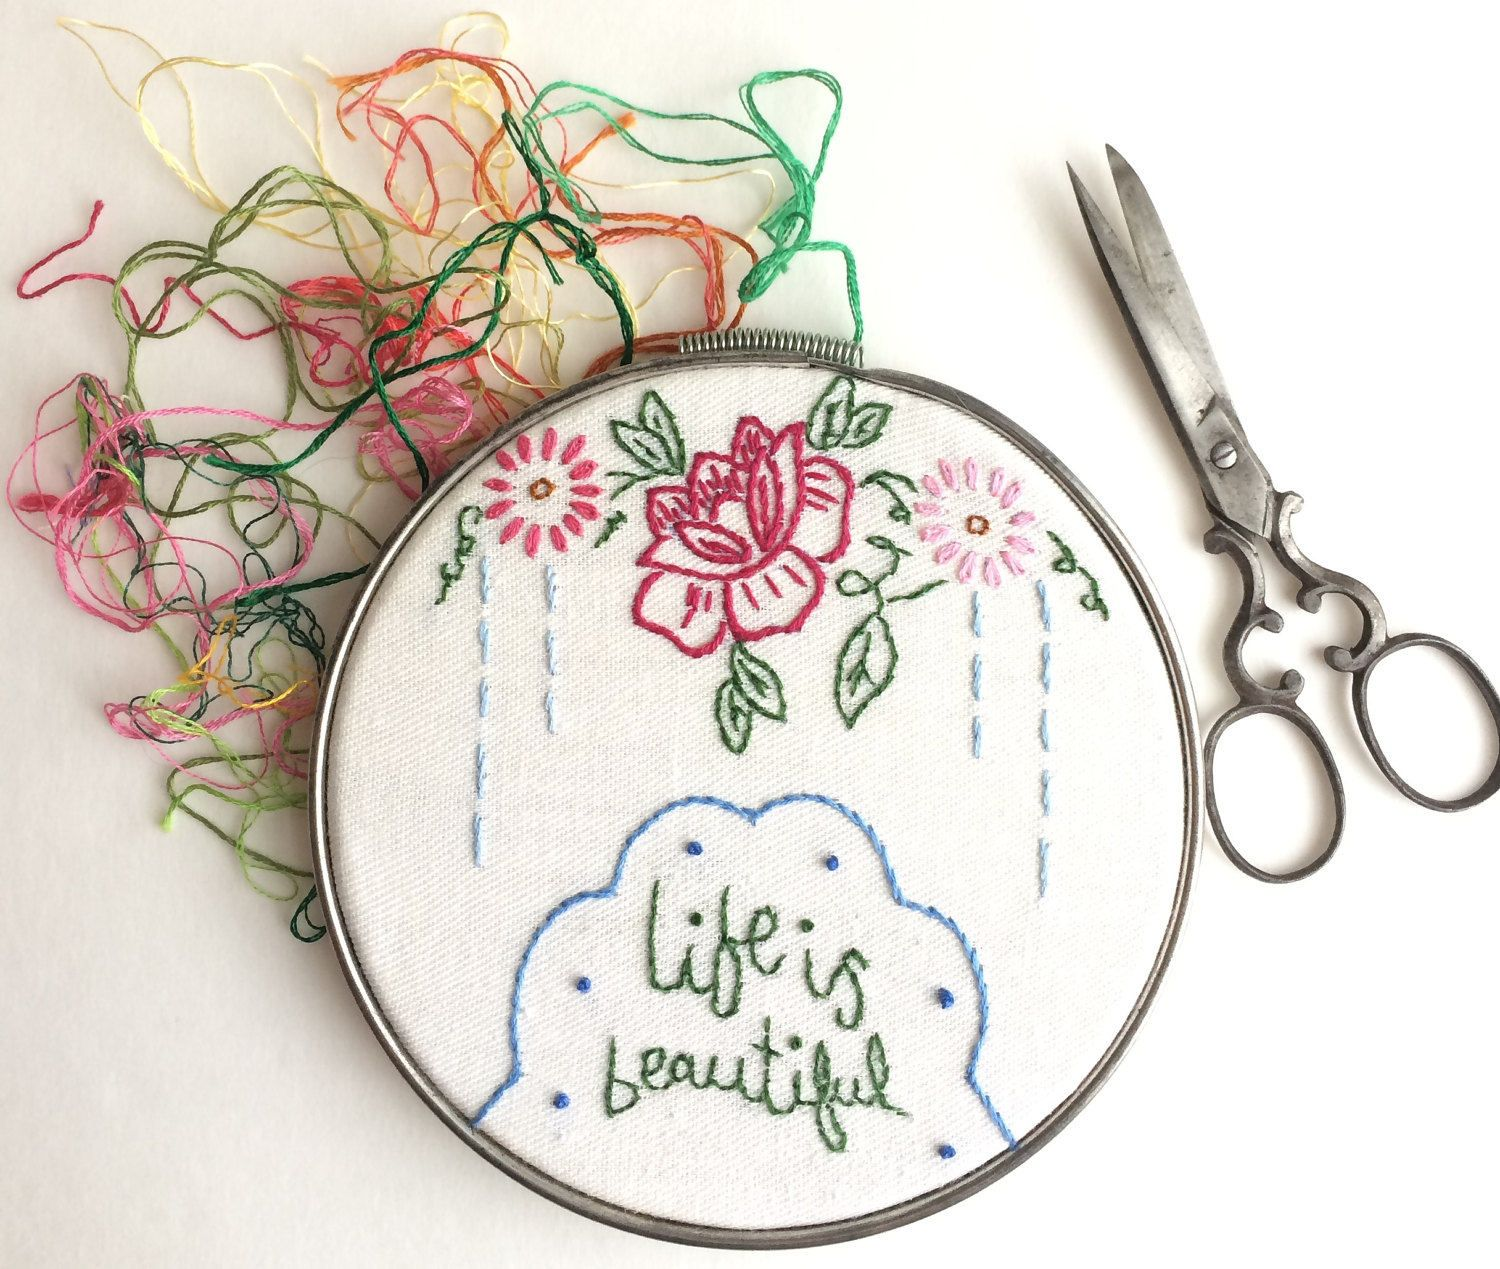 Shabby chic vintage embroidery metal hoop floral